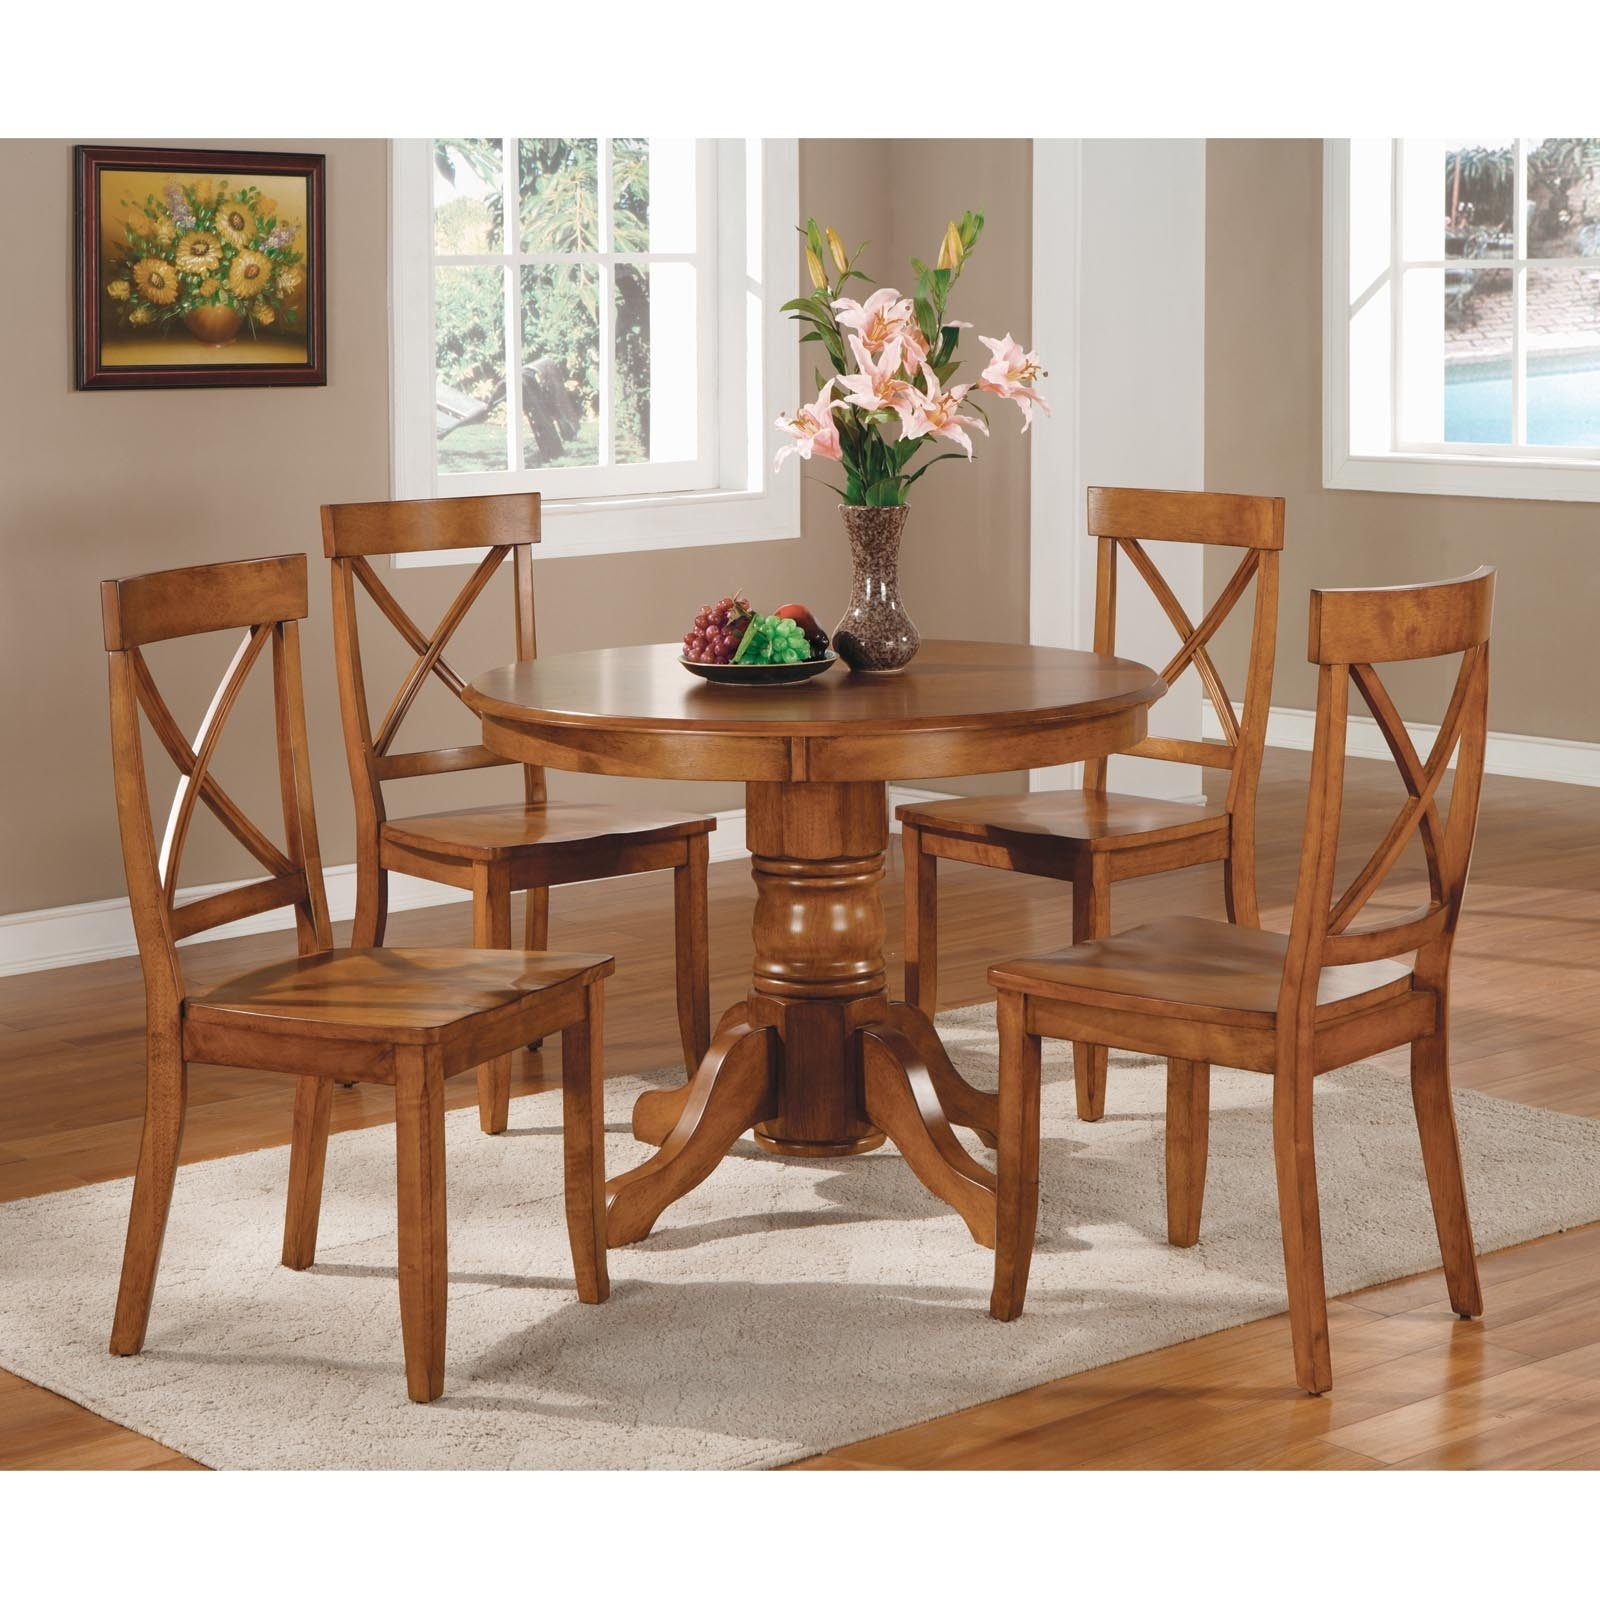 Round Oak Dining Tables And Chairs In Most Popular Home Styles Pedestal Dining Table, Cottage Oak – Walmart (View 17 of 25)